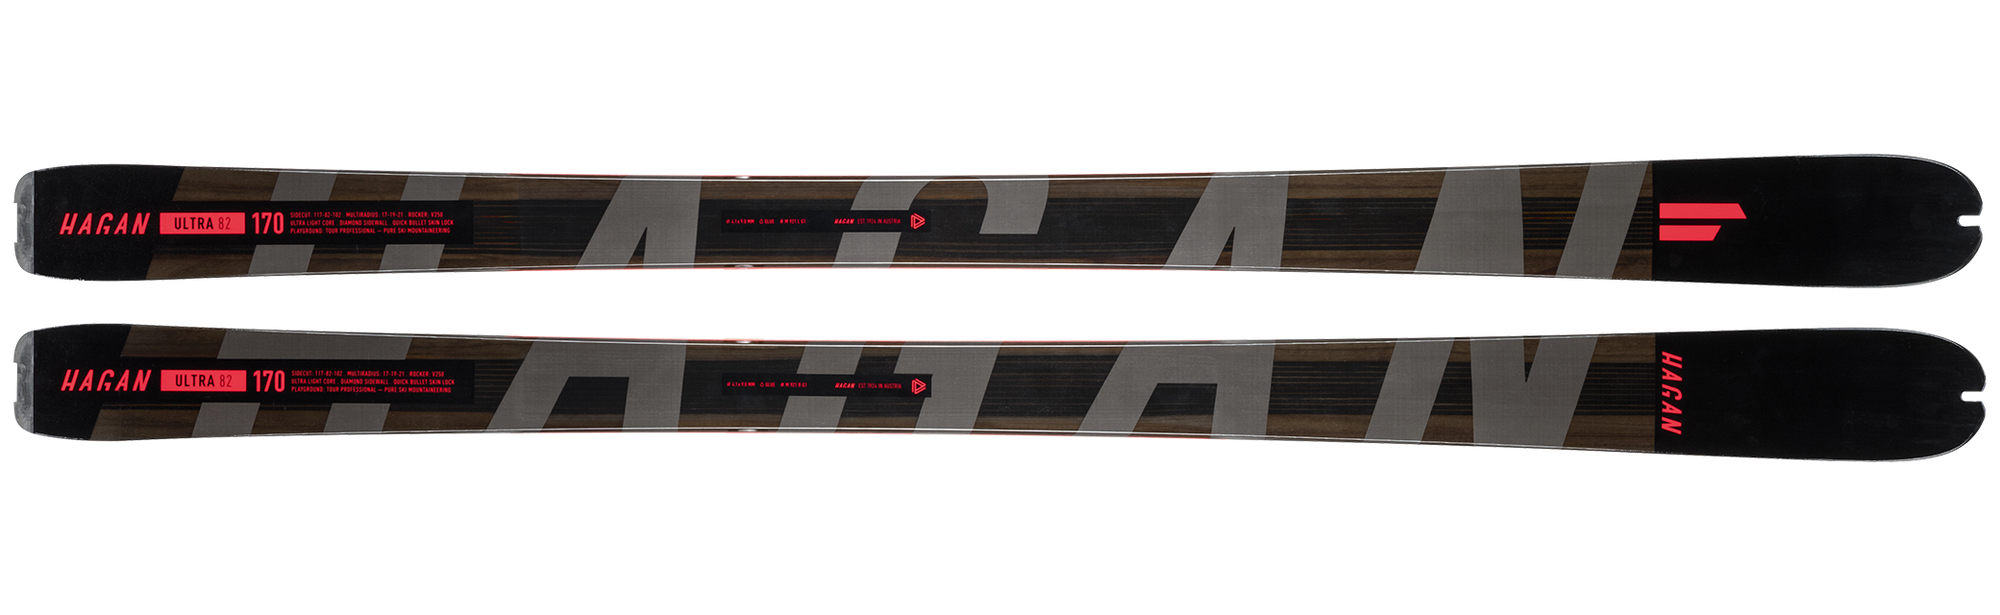 Hagan Ultra 82 alpine ski touring ski